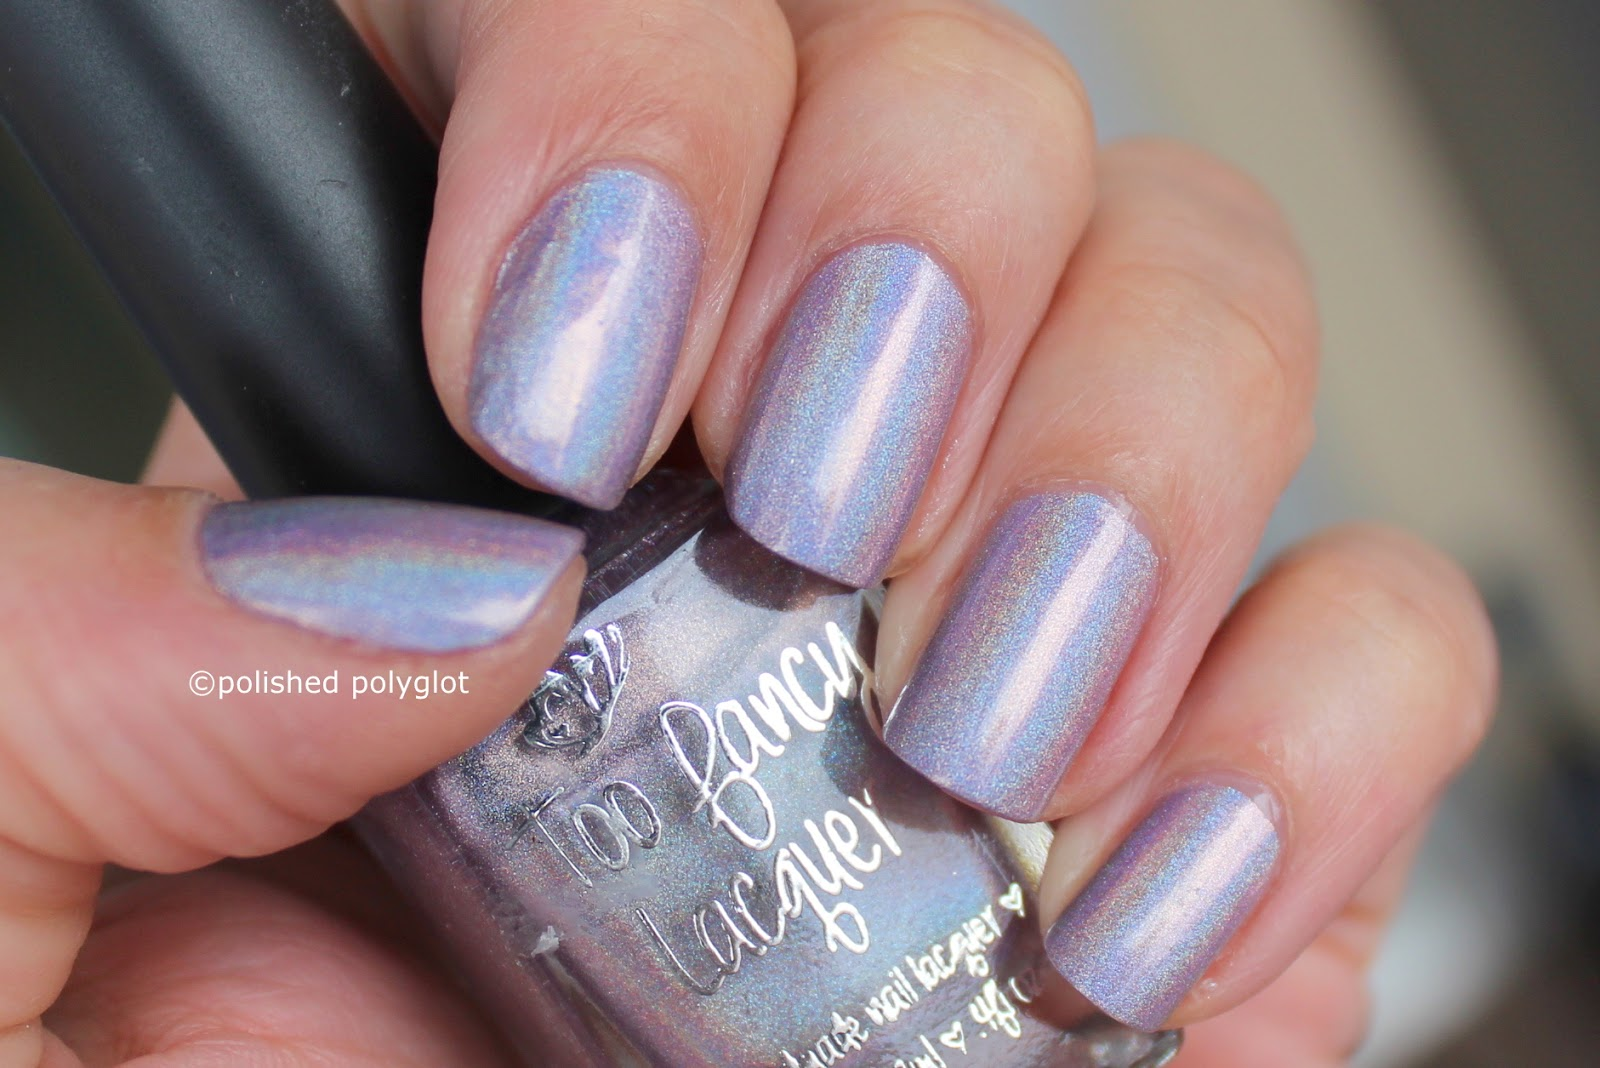 T is for Too fancy lacquer / Polished Polyglot